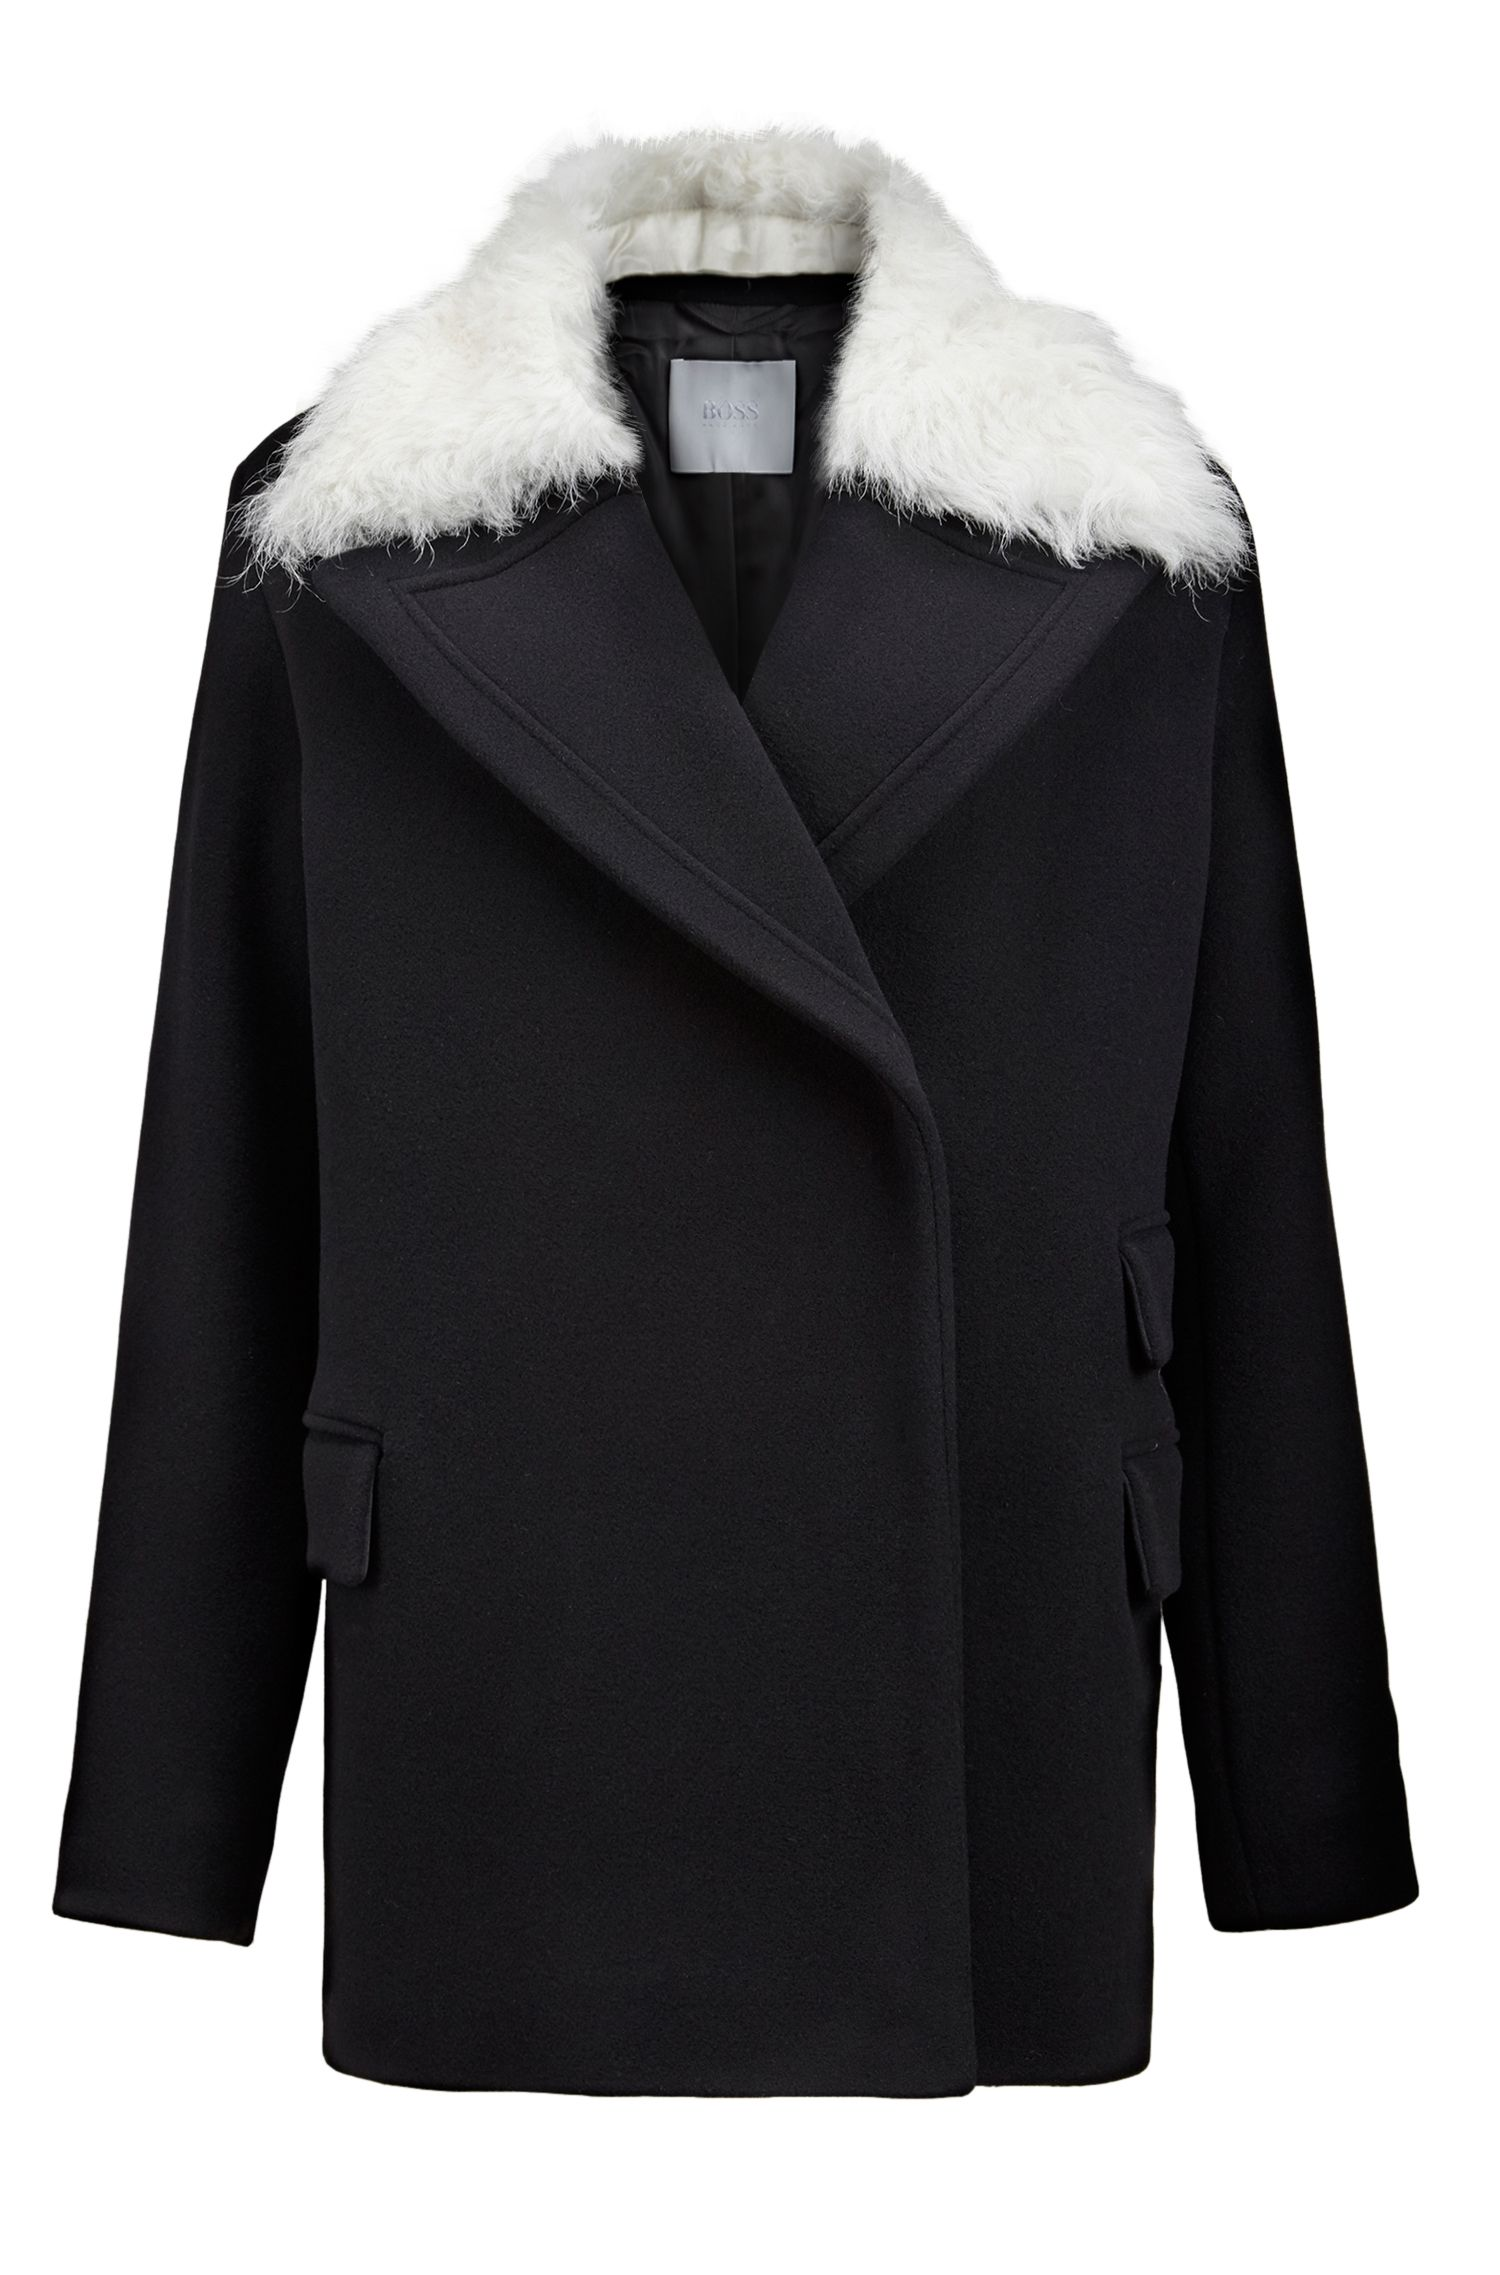 Shearling Wool-Cashmere Jacket | FS Palisena